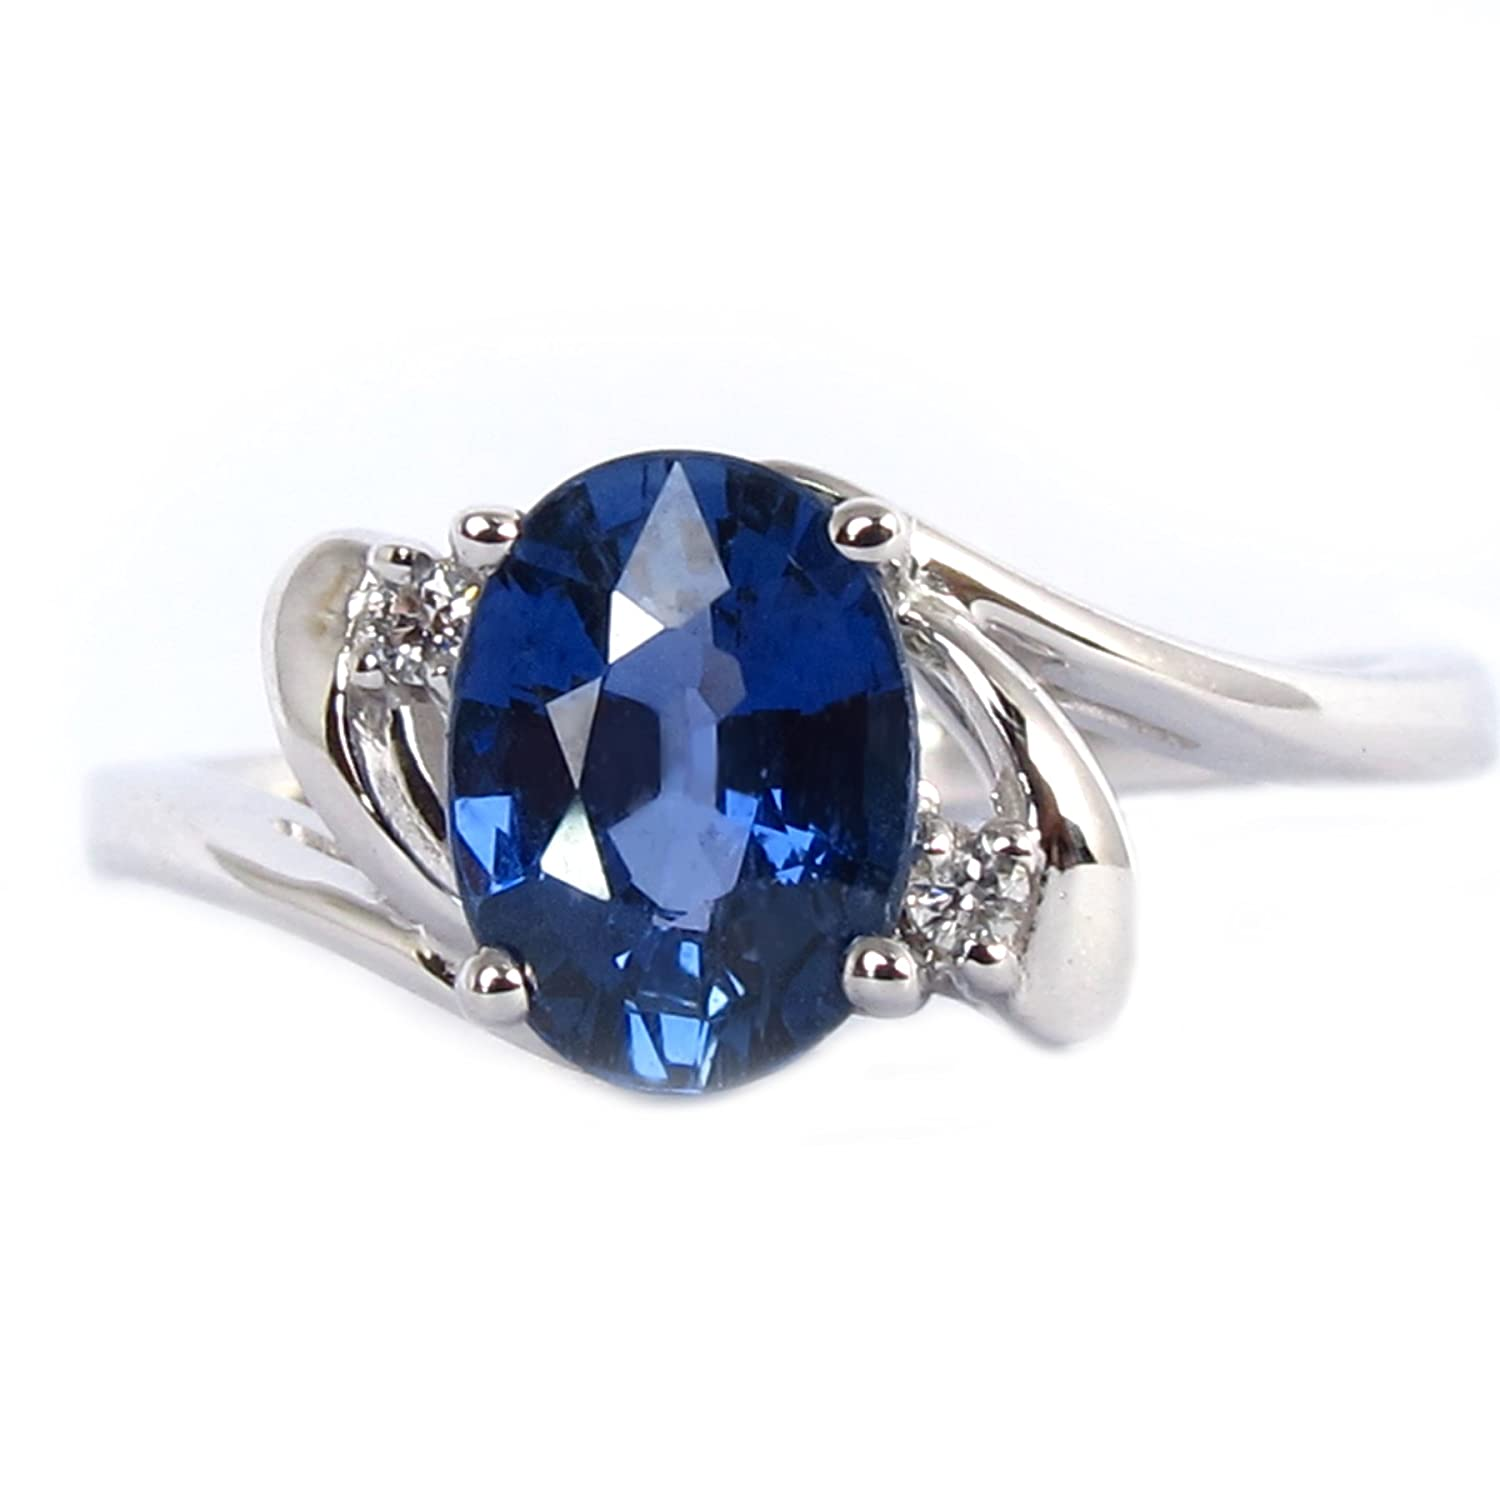 7f28d117ef1596 1.14 Carats Natural Blue Sapphire Oval Cut 7.40x5.45mm 18k White Gold Ring  Size 6, Diamond 0.03ct: Amazon.ca: Jewelry